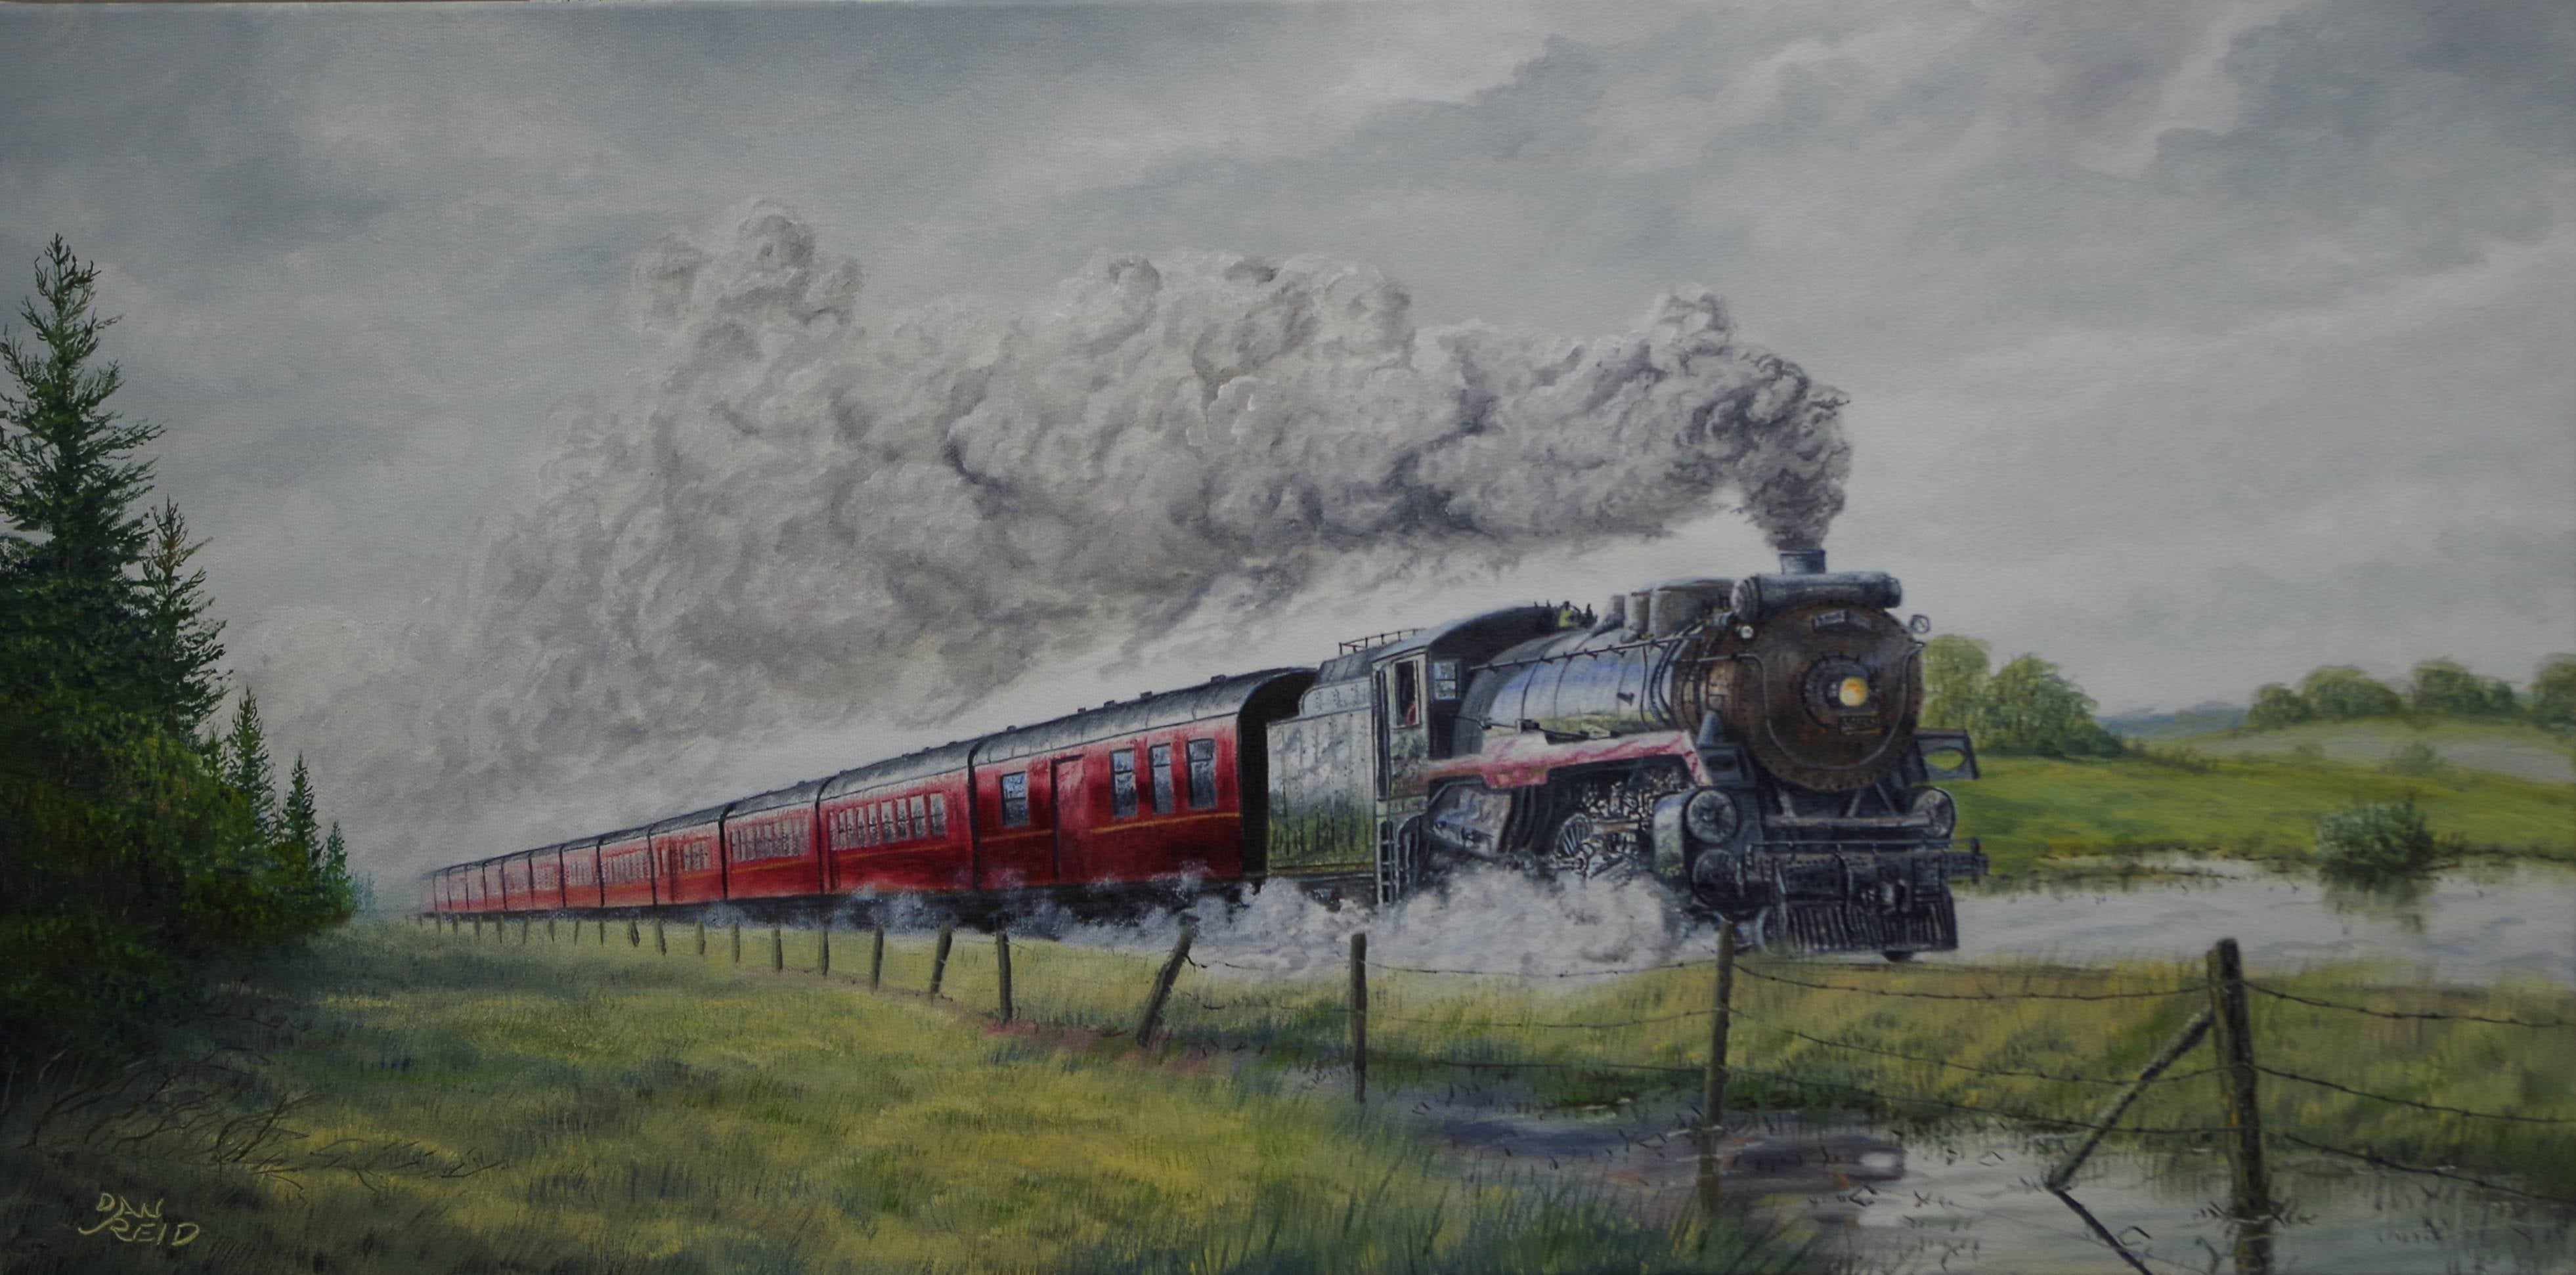 Heading West Stretched Canvas Artwork by Dan Reid